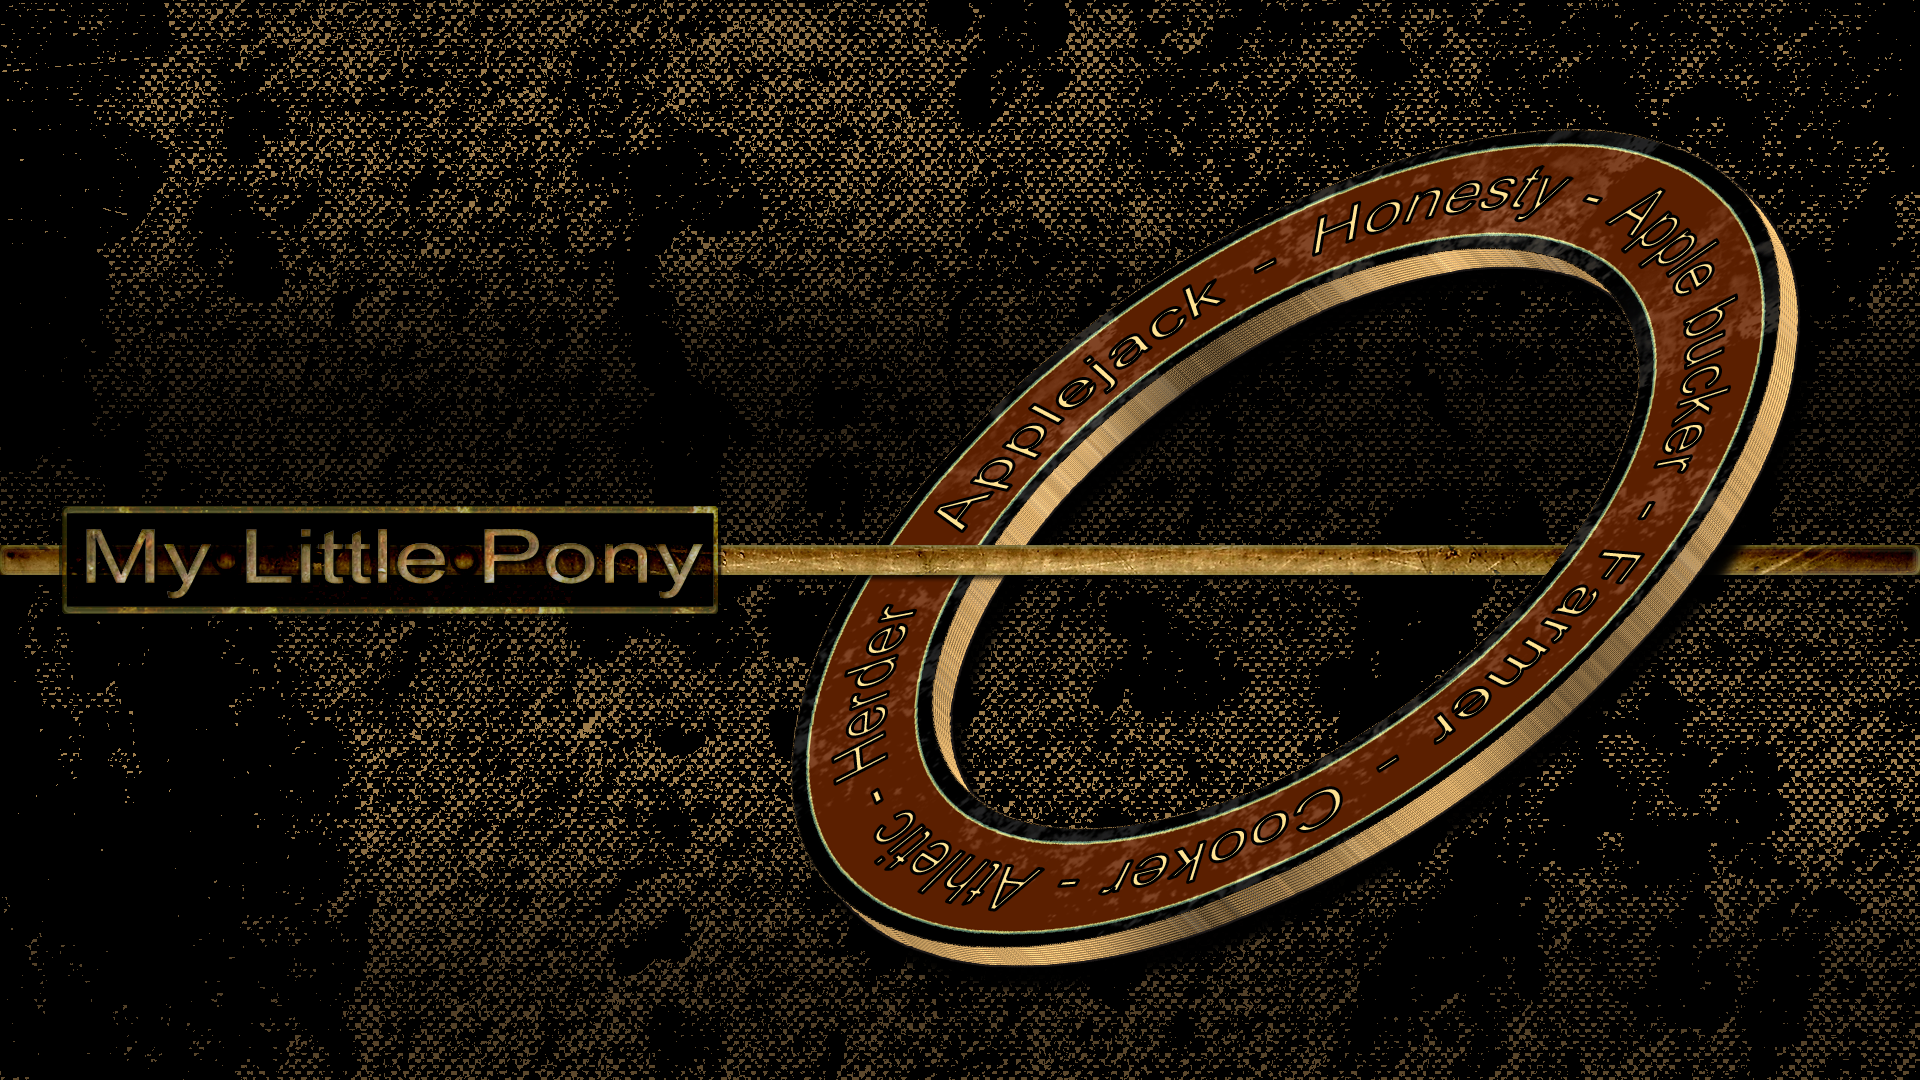 Applejack - Rust Ring by pims1978